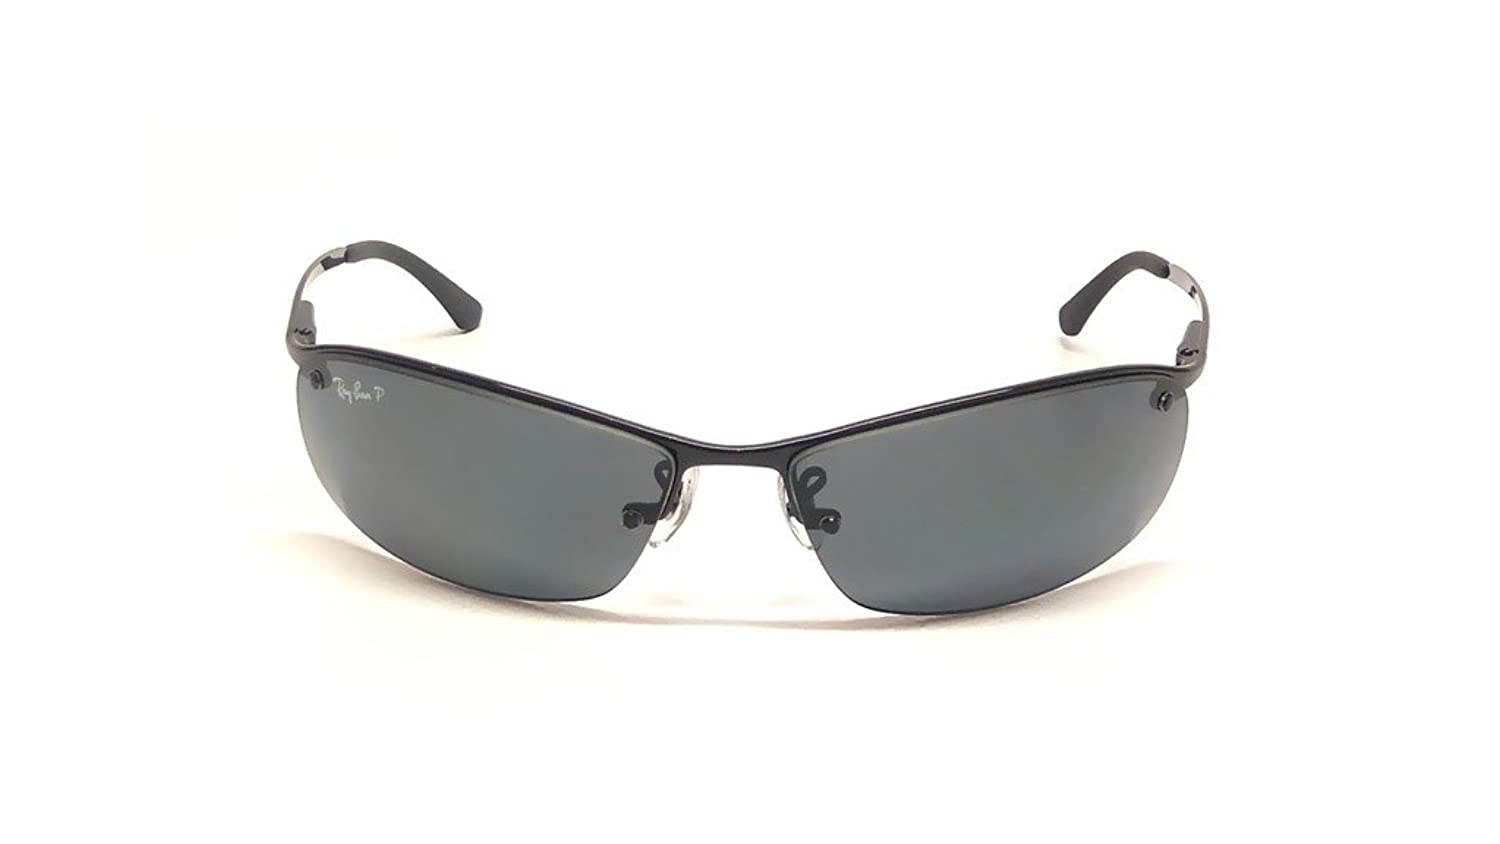 Amazon.com: Ray Ban RB3183 002/81 63mm Black/Polarized Gray Sunglasses Bundle-2 Items: Shoes